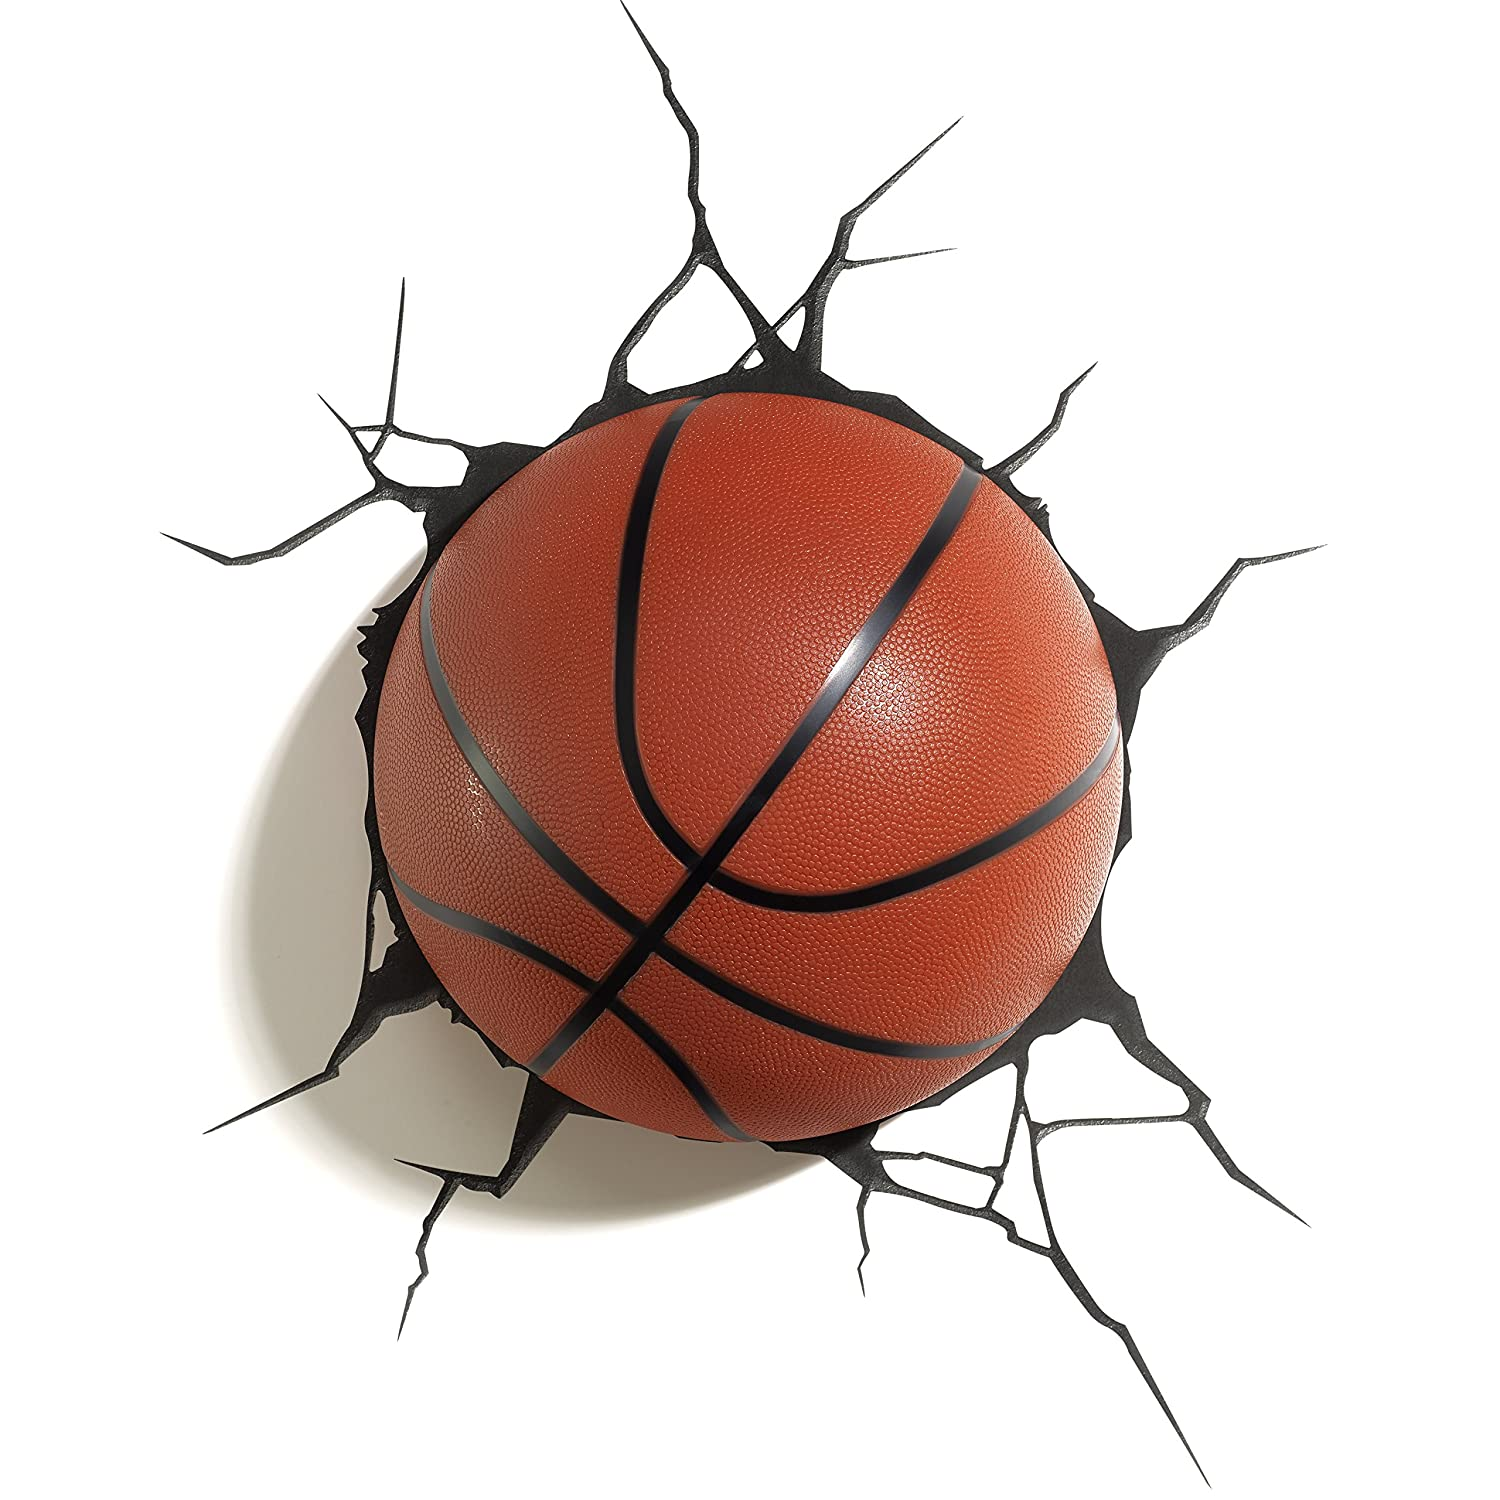 3D Light FX Plastic Basketball Light - Orange/ Black 94024